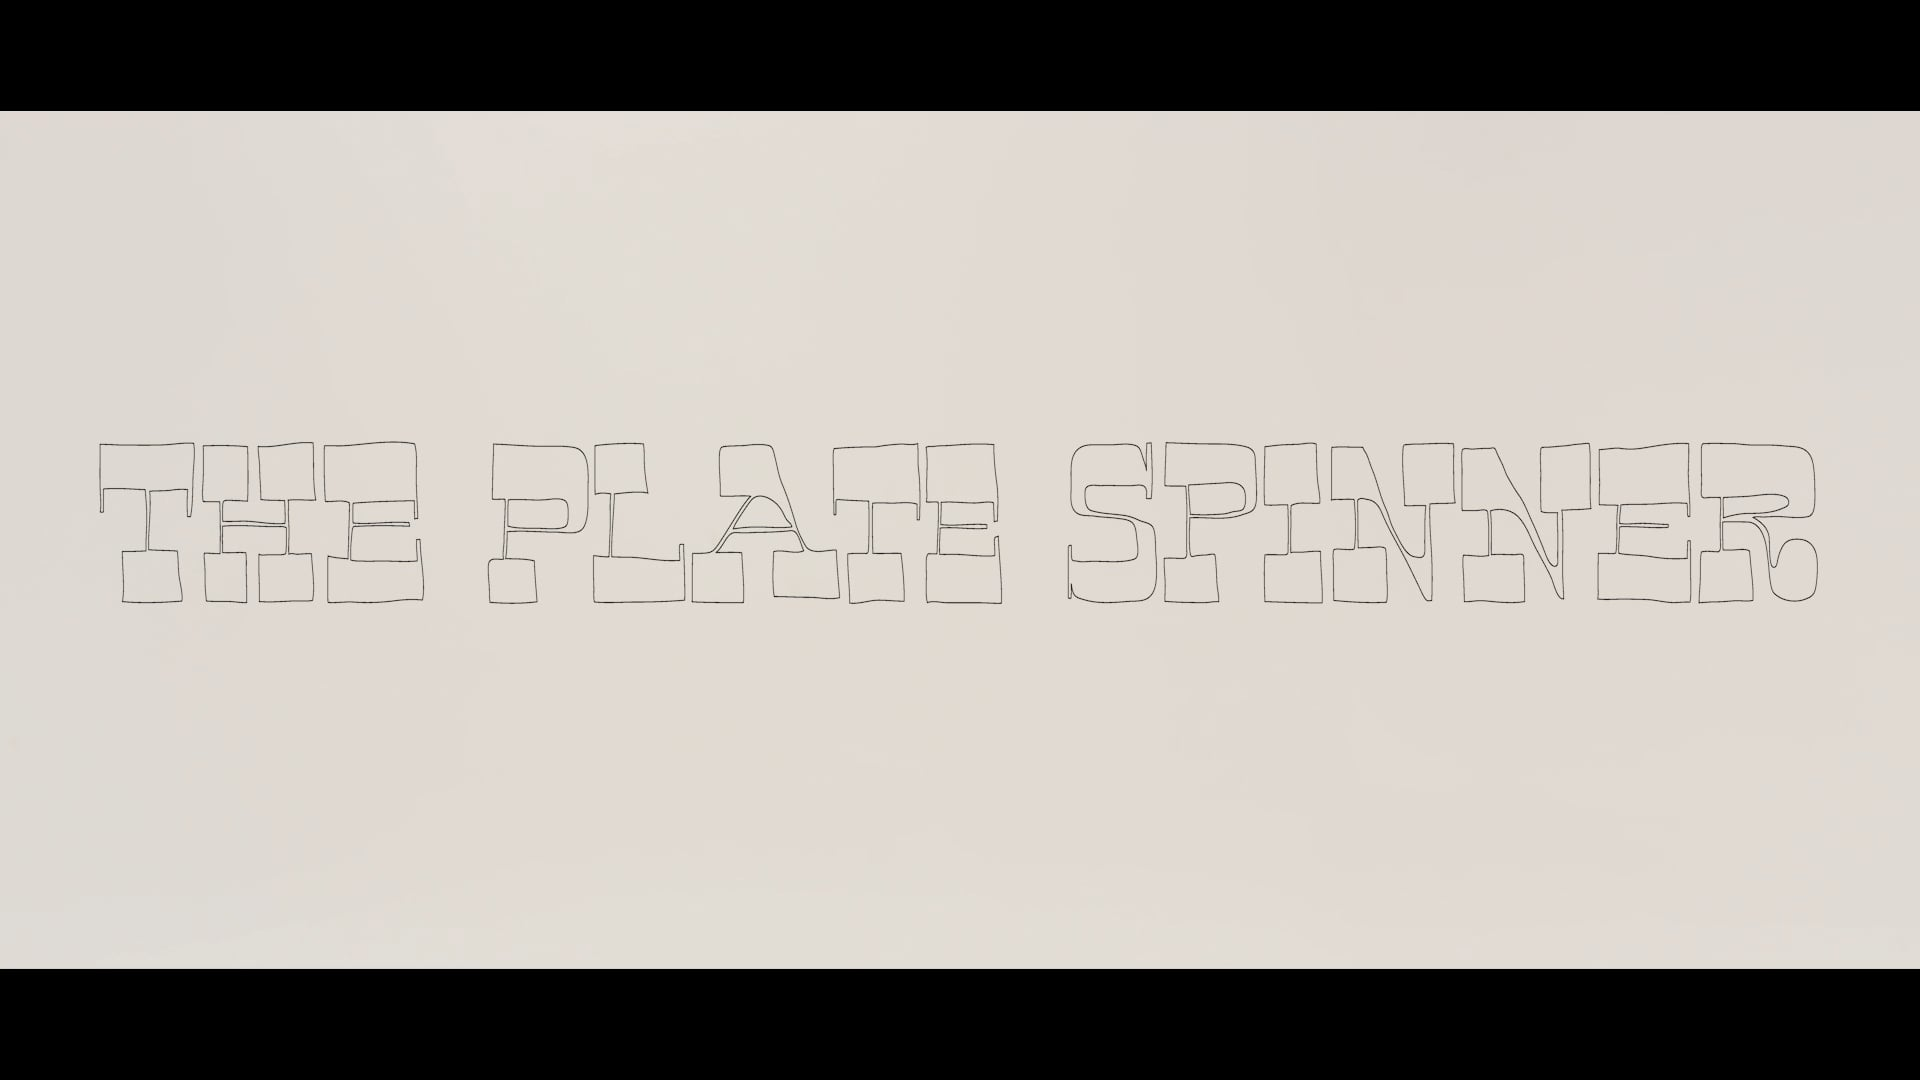 The Plate Spinner